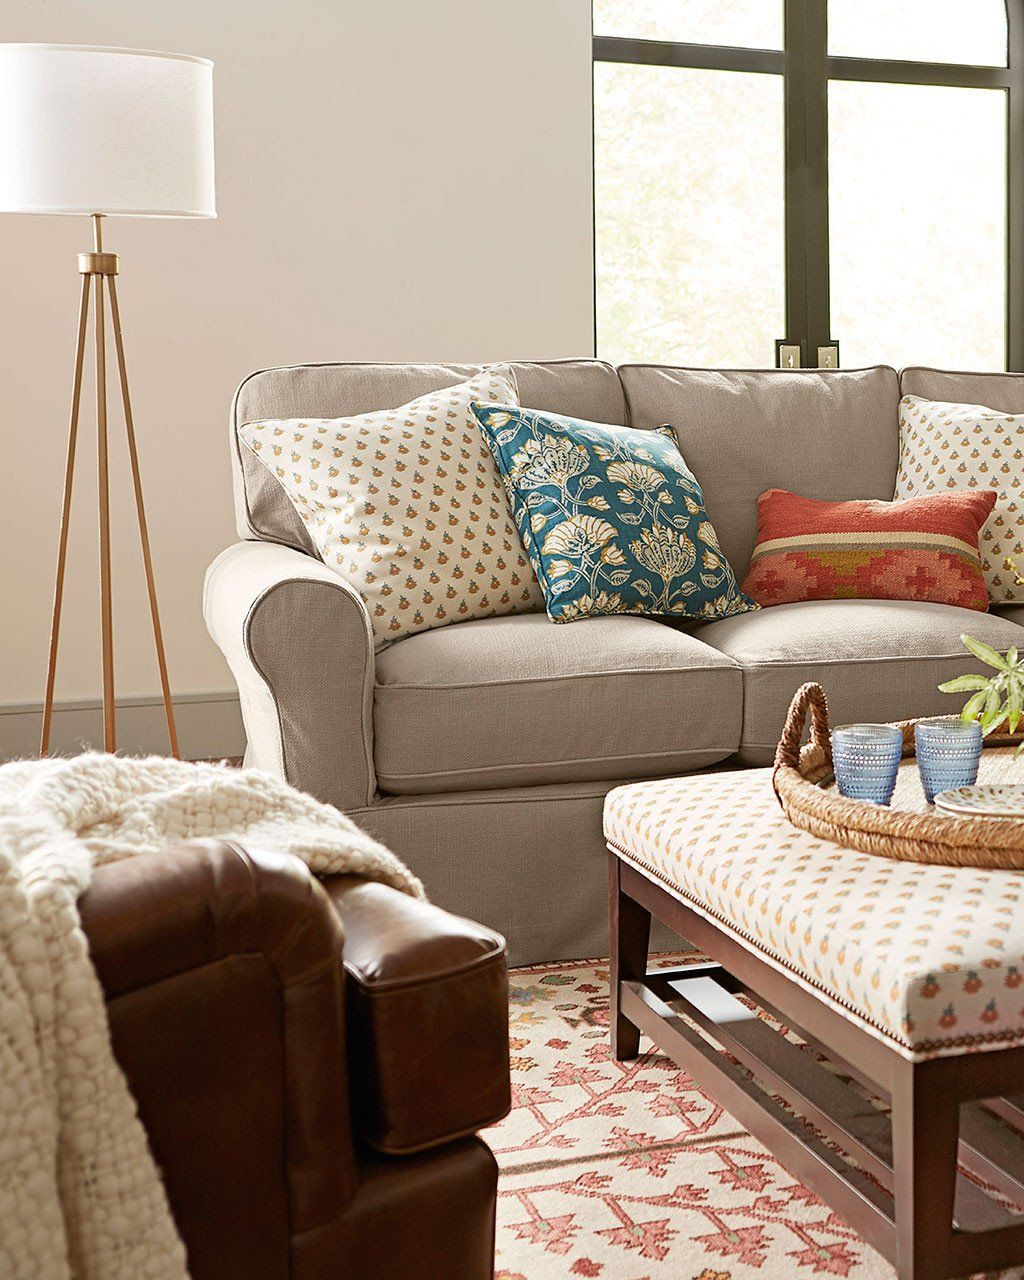 Small Living Room Couch Idea Best Of Small Living Room Ideas For More Seating And Style In 2020 Small Living Rooms Small Living Room Design Small Living Room Table #small #living #room #couch #ideas